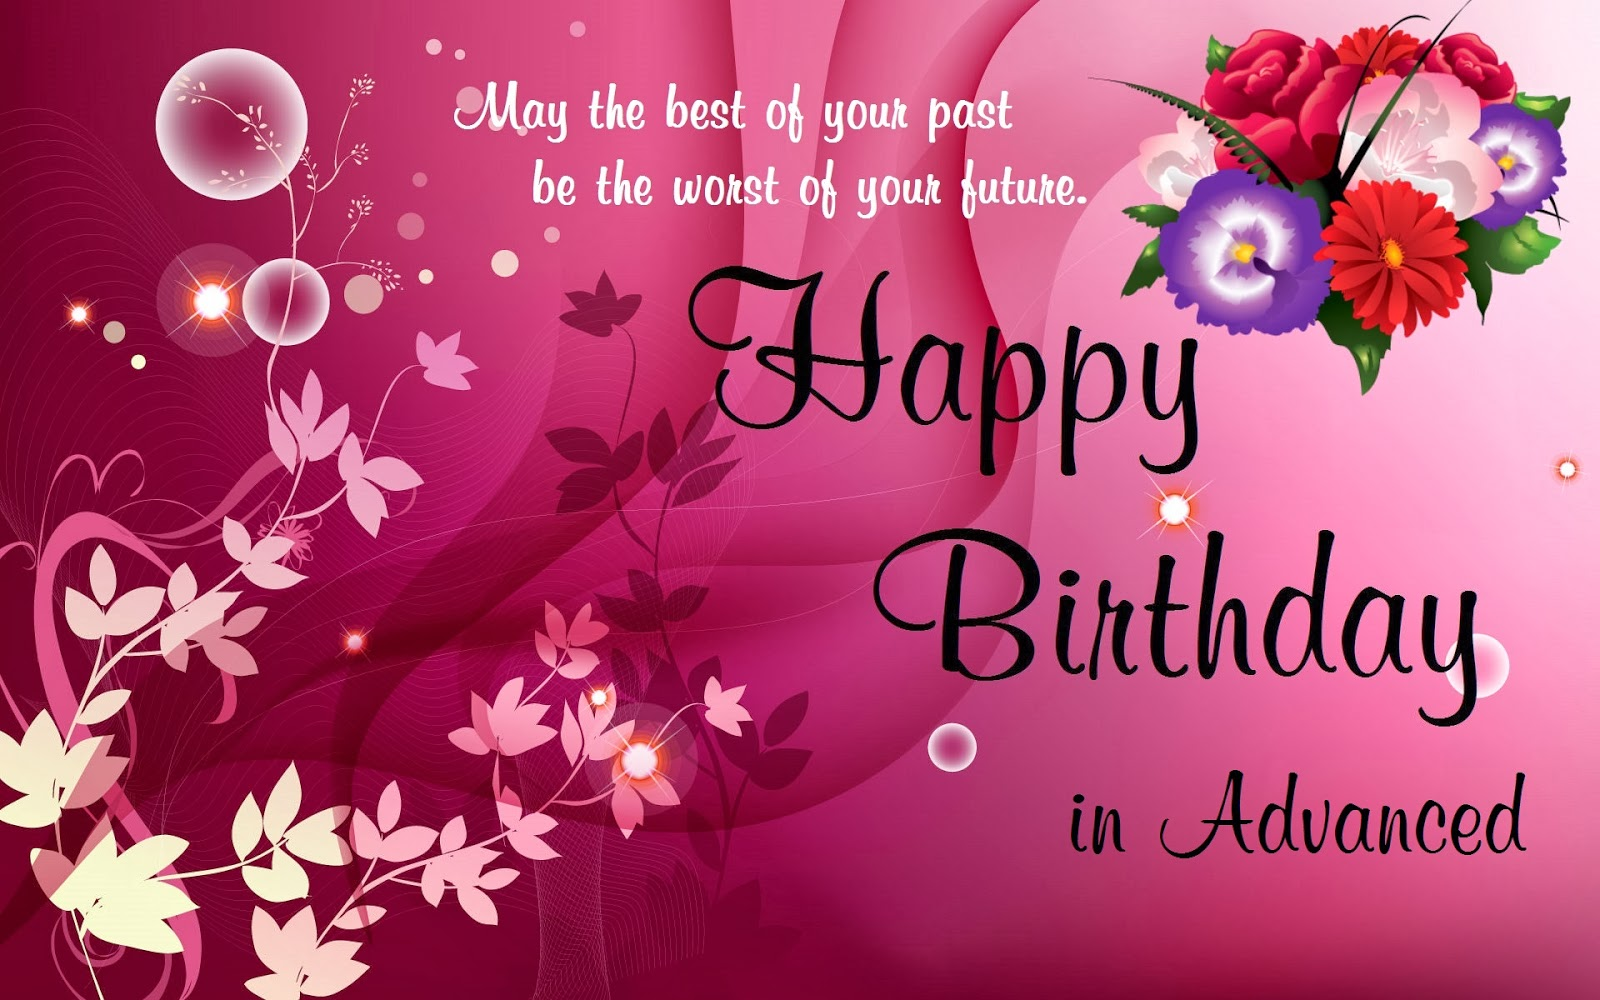 Birthday Message birthday sms messages hindi marathi for friends – Greetings of Happy Birthday